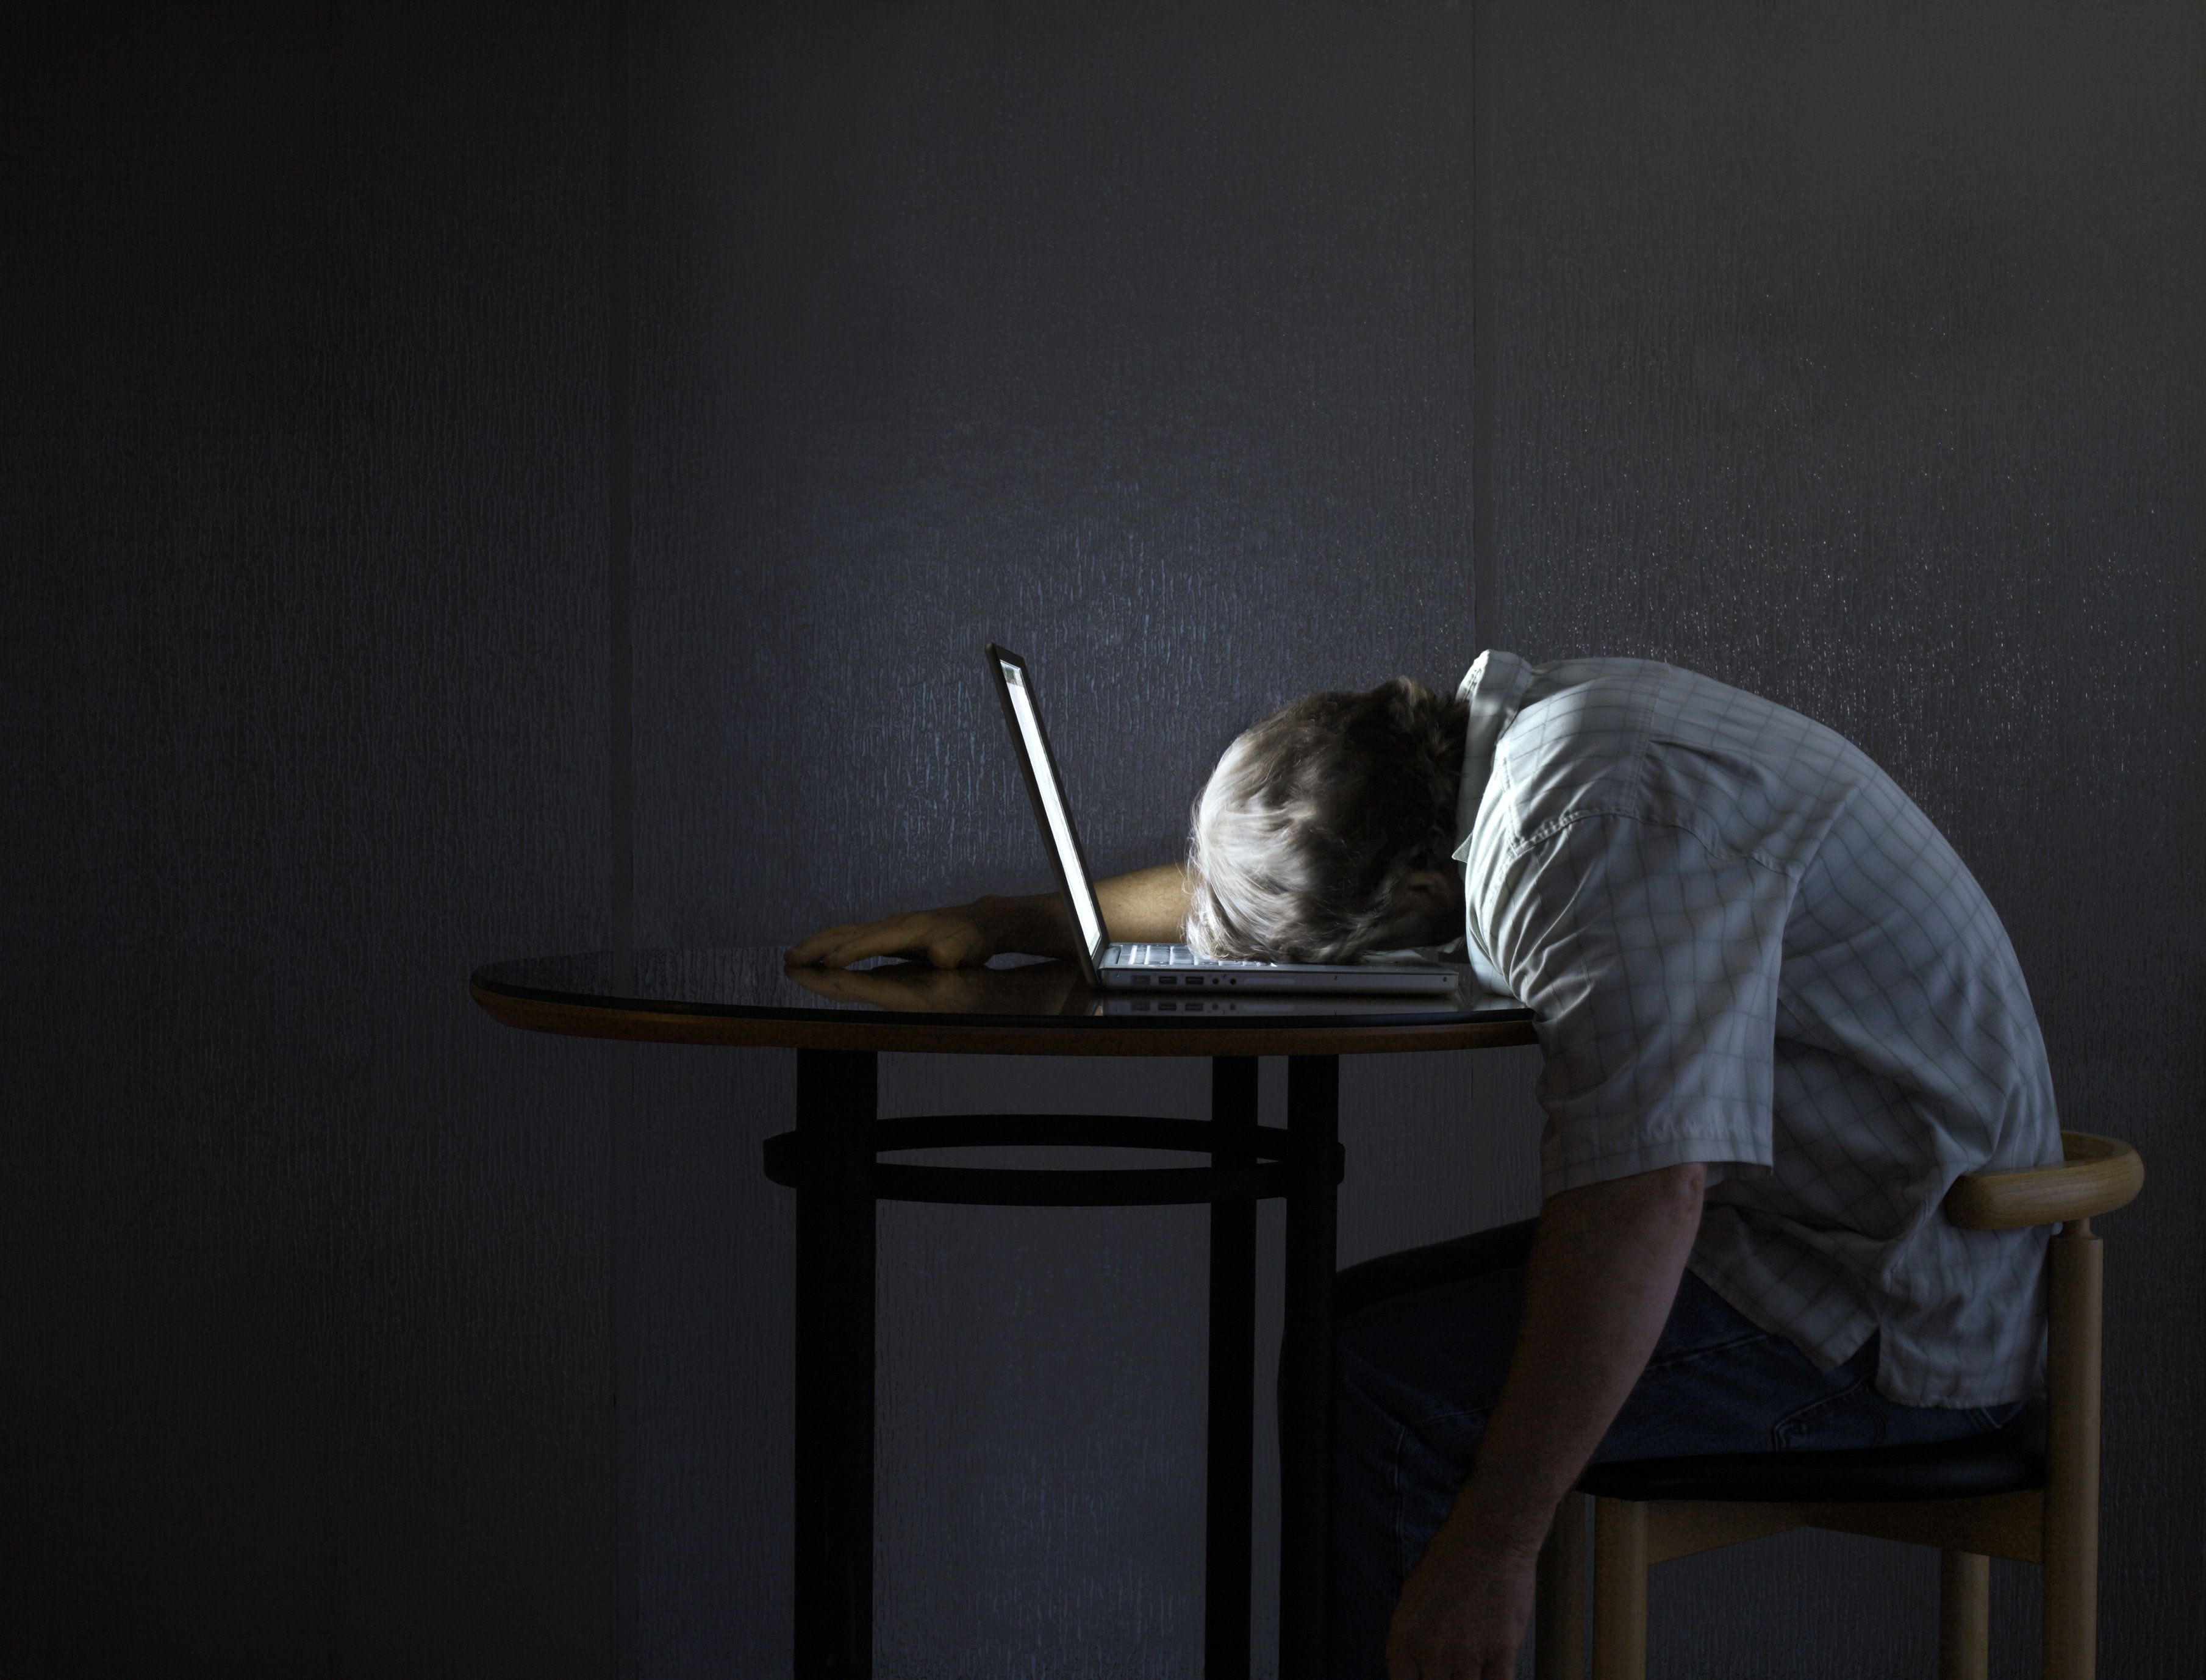 Microsleep can cause you to nod off at the computer for just a few seconds.